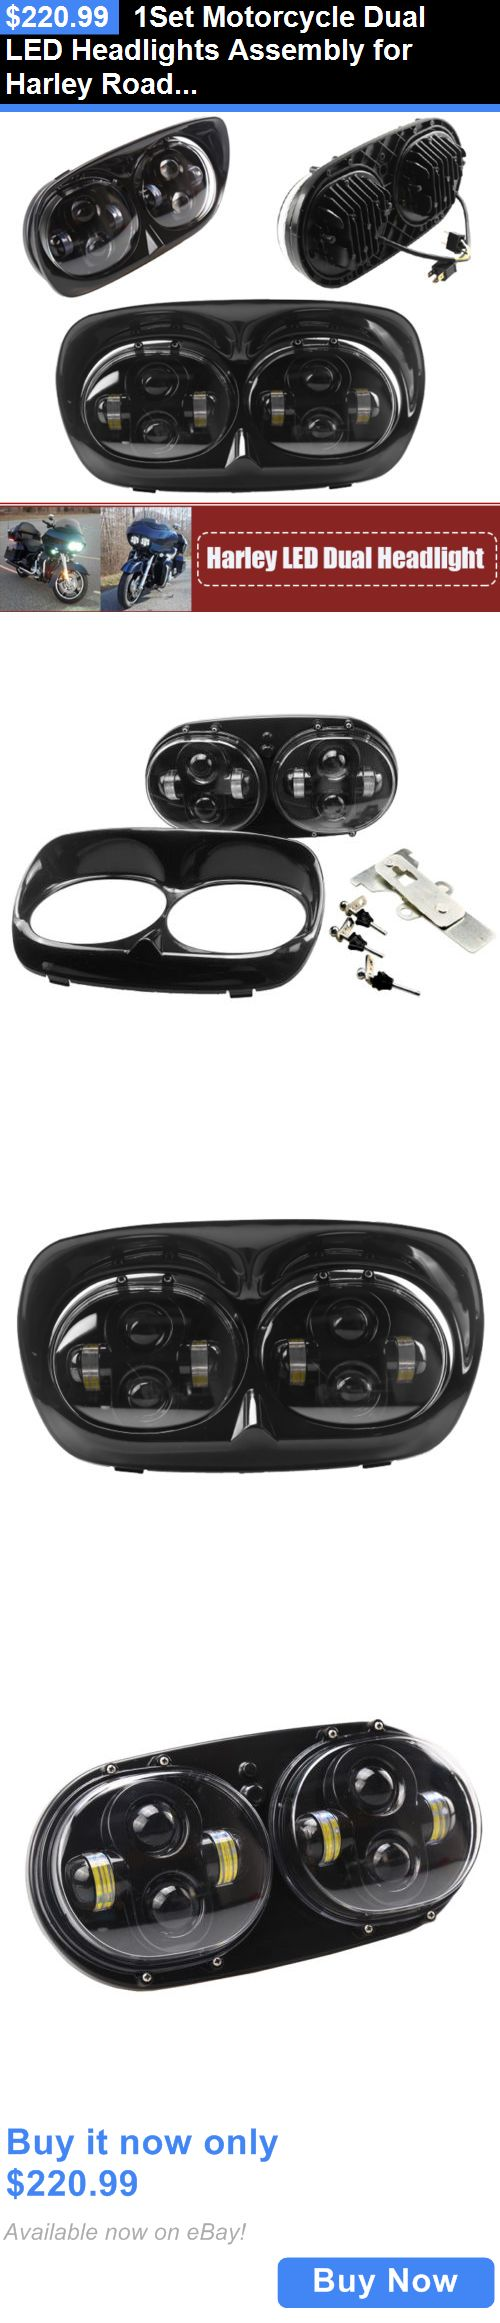 1set led headlights Road glide dual LED Headlight motorcycle accessories High/Low Double Headlight For Harley Road Glide